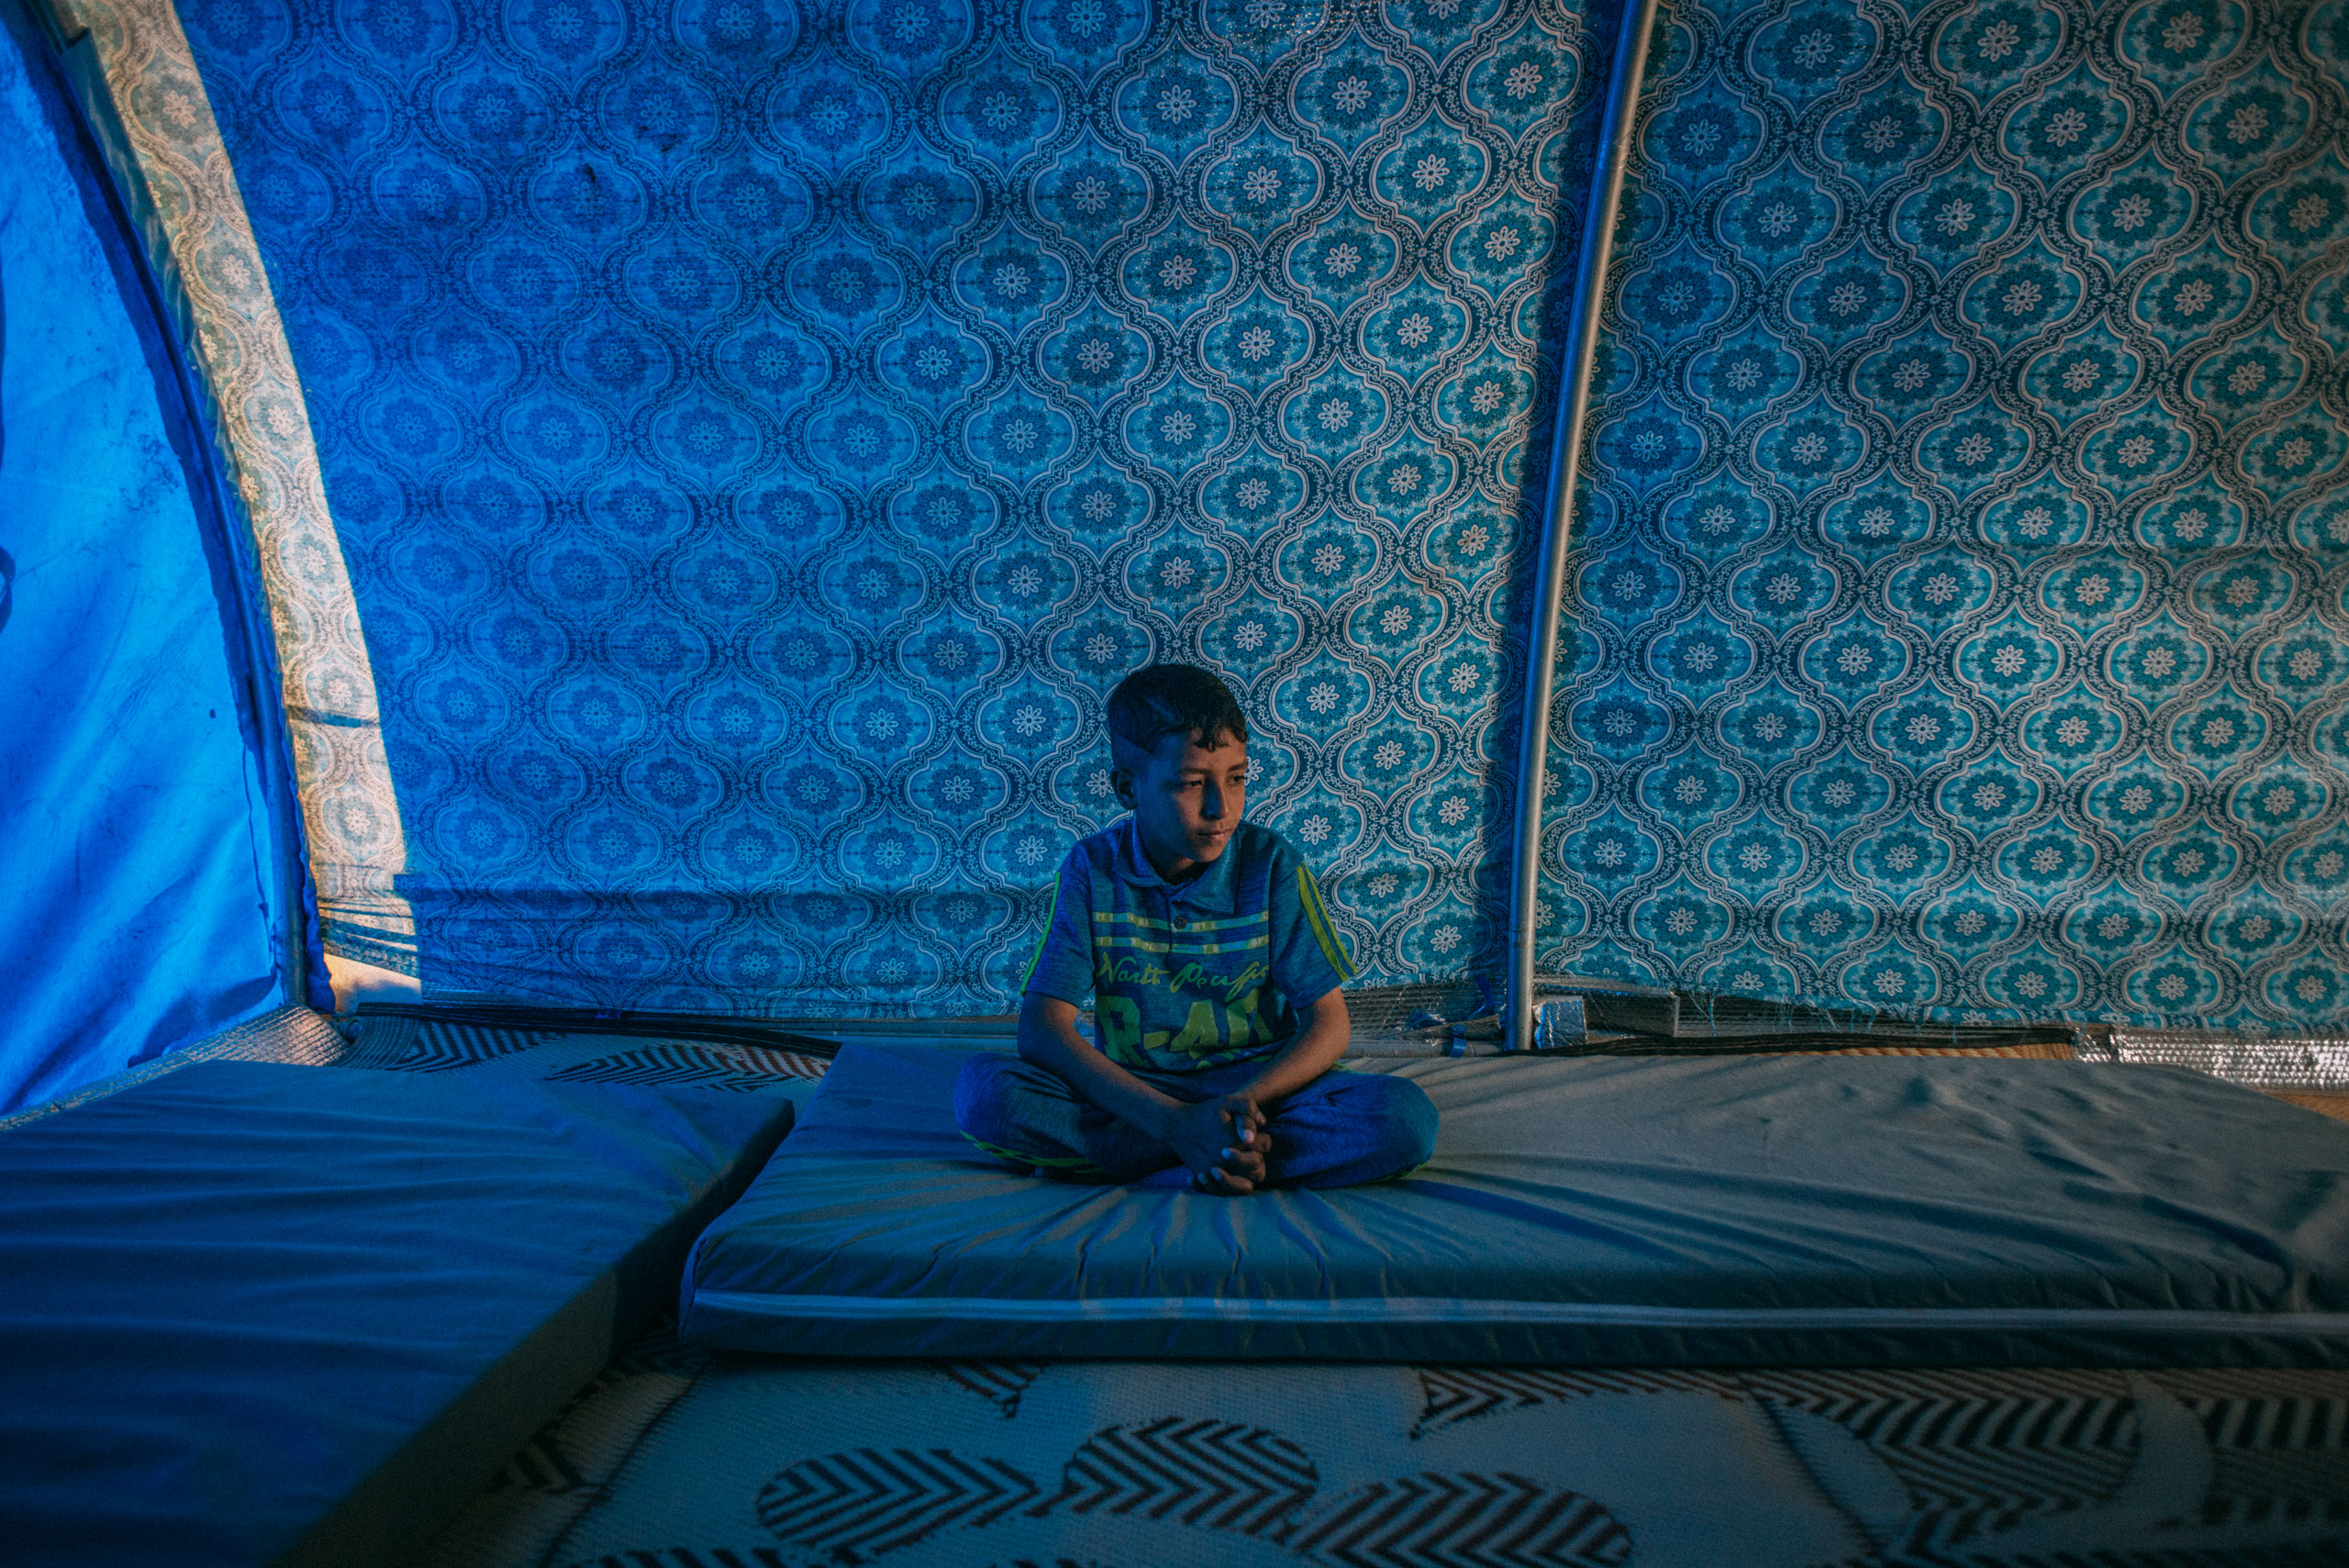 Ayman Mohamed Ahmed lives in the Hamam al-Alil displacement camp south of Mosul. On April 6, 2017, he answered a few questions about his recent days in this war zone. His most recent meal? Rice and beans. What does he think about at night?  I hope ISIS members do not come and blow themselves up in our house.  His favorite toy? He doesn't have toys in the camp, but back at home it was a car. What does he want to be when he grows up? A doctor, because that's  the best  and he wants to help people.